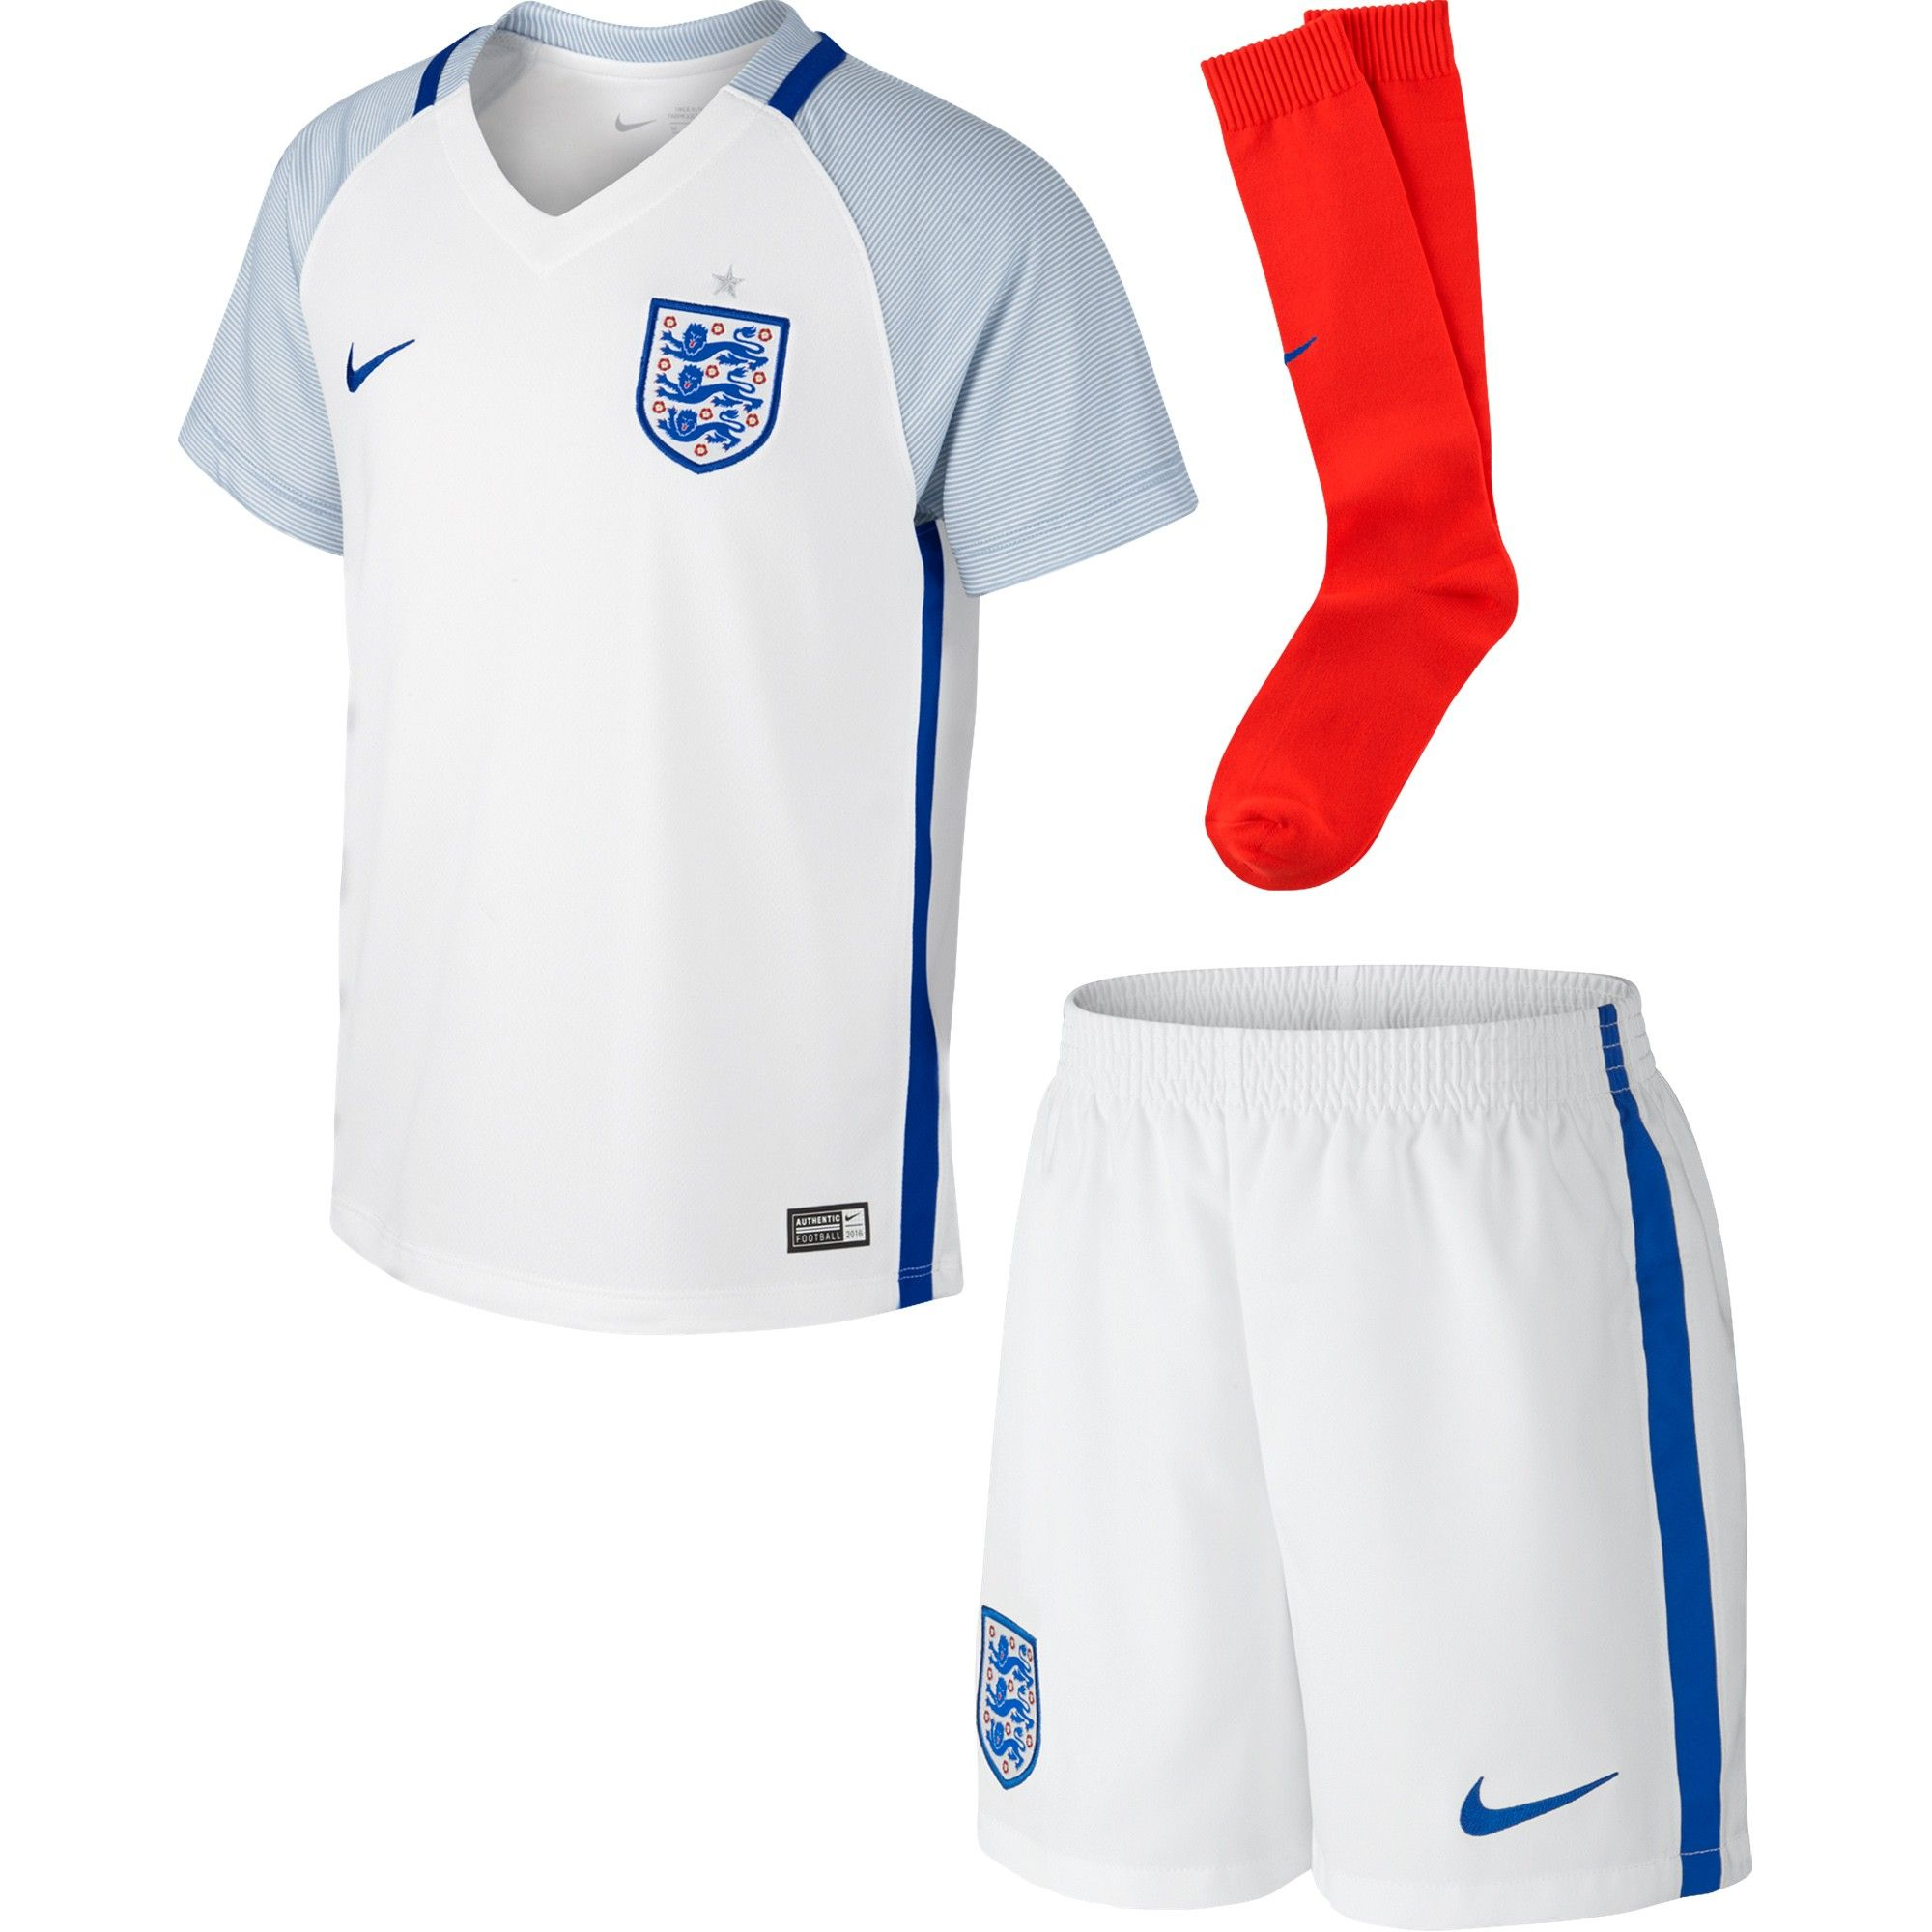 Official Nike England home football shirt from the 201617